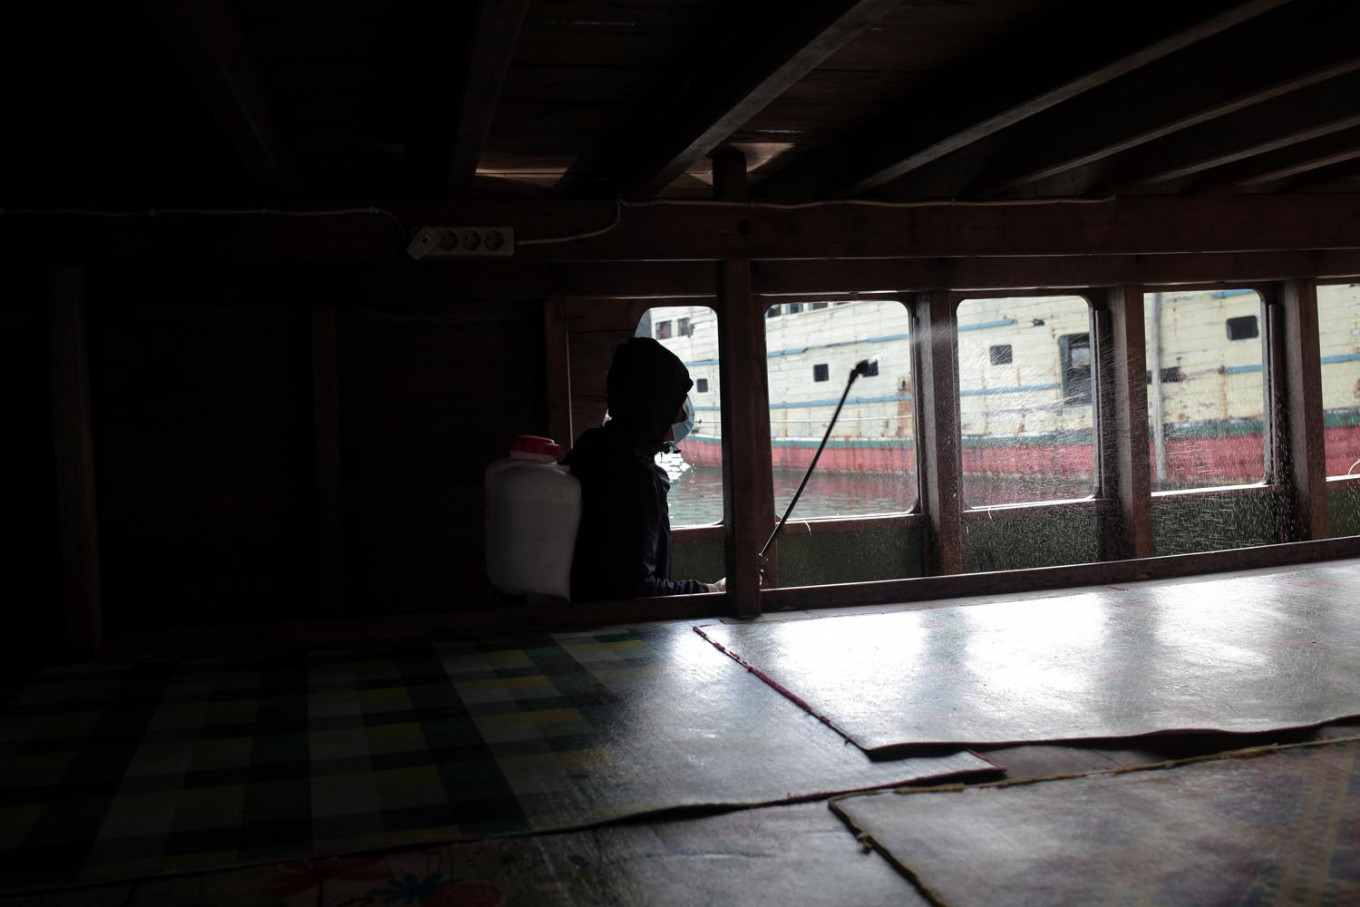 After all the passengers are cleared, a disinfectant worker sprays the boat's cabin. JP/ Edy Susanto